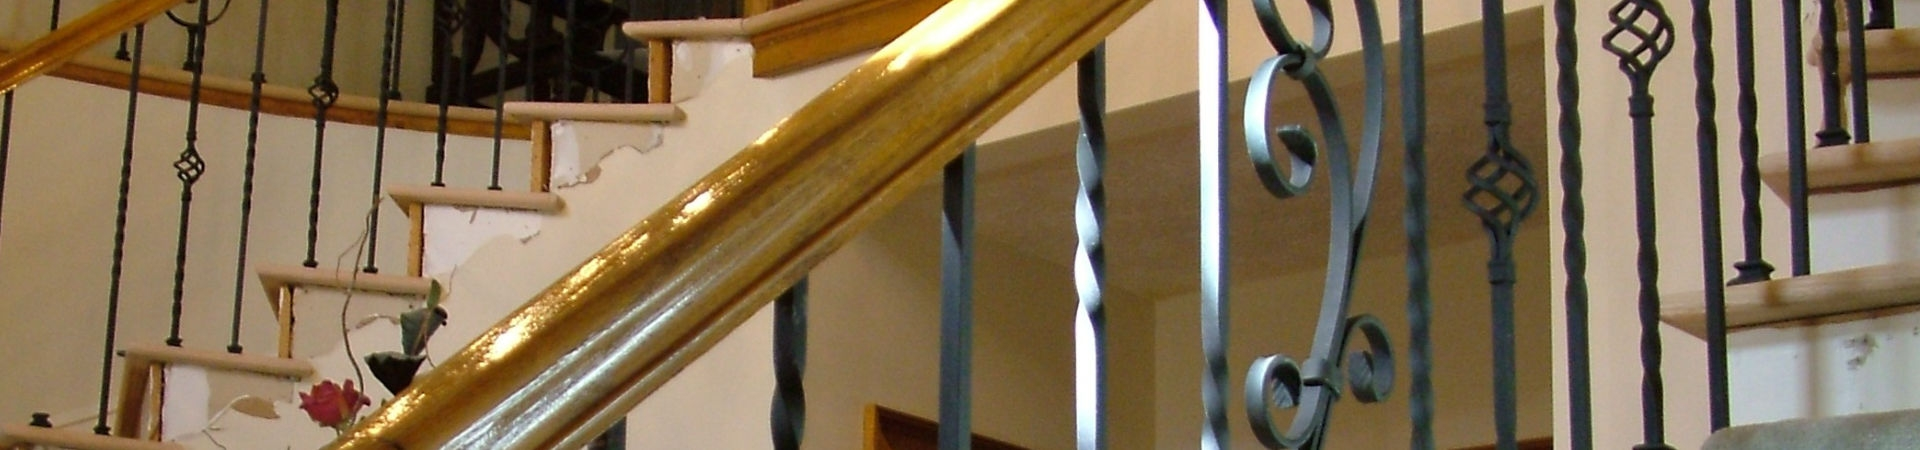 Wrought Iron Stair Railing Southern Staircase Artistic Stairs | Wrought Iron And Wood Railing | Iron Baluster | Rustic | Split Foyer | Horizontal | Banister